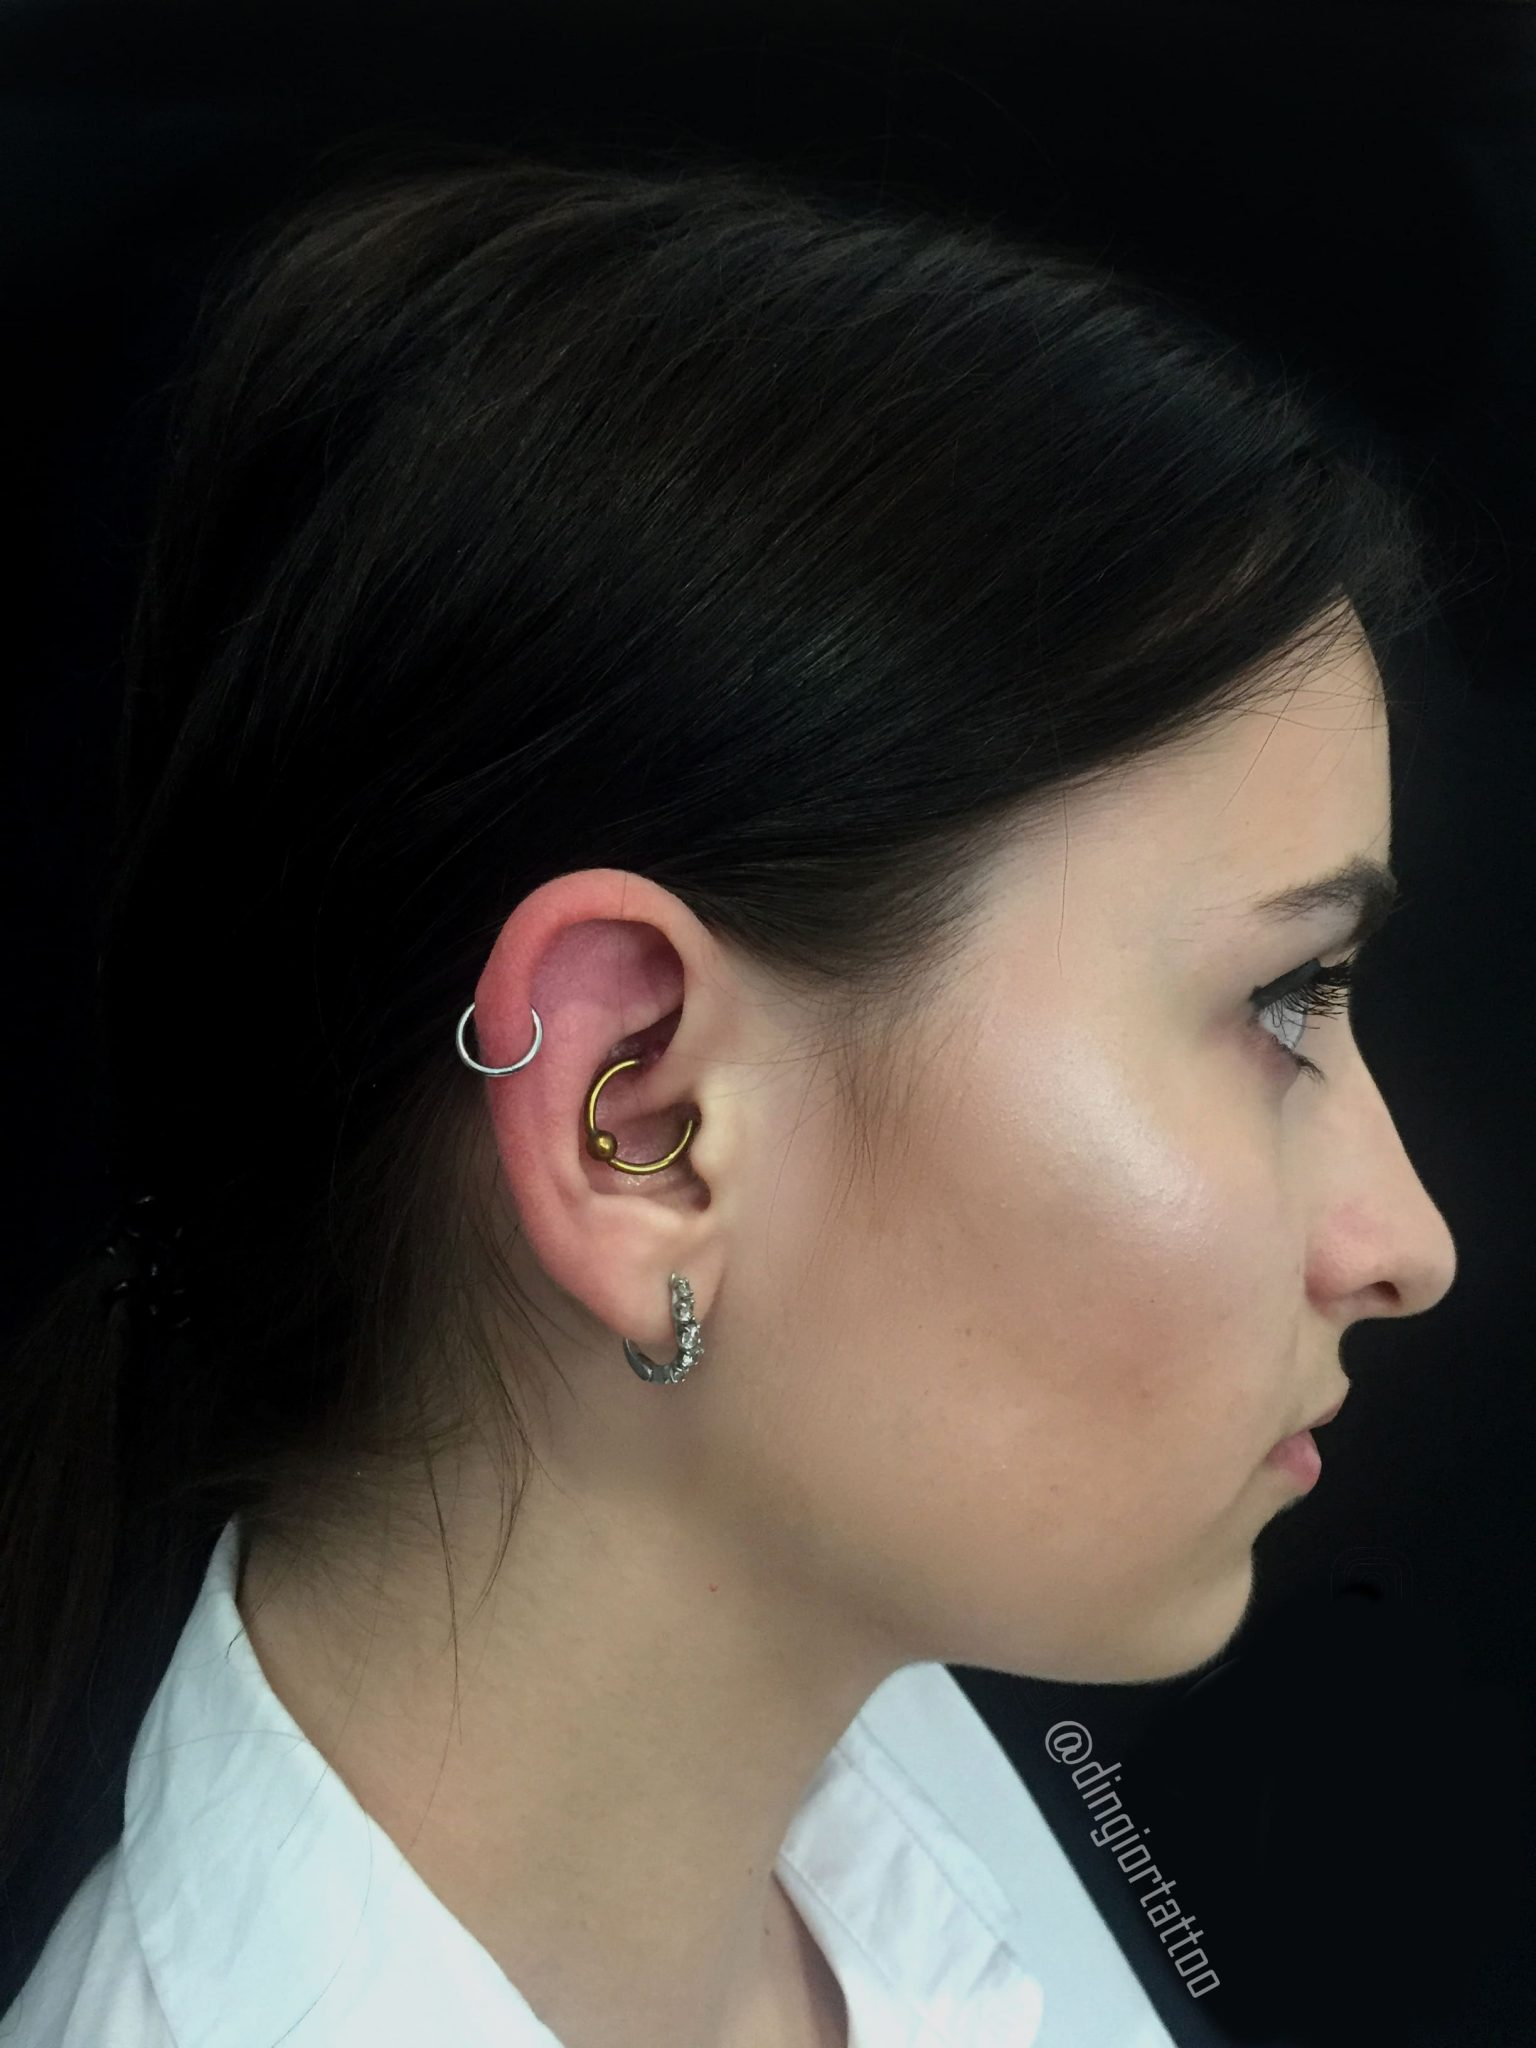 piercing Ruck Helix and lobe